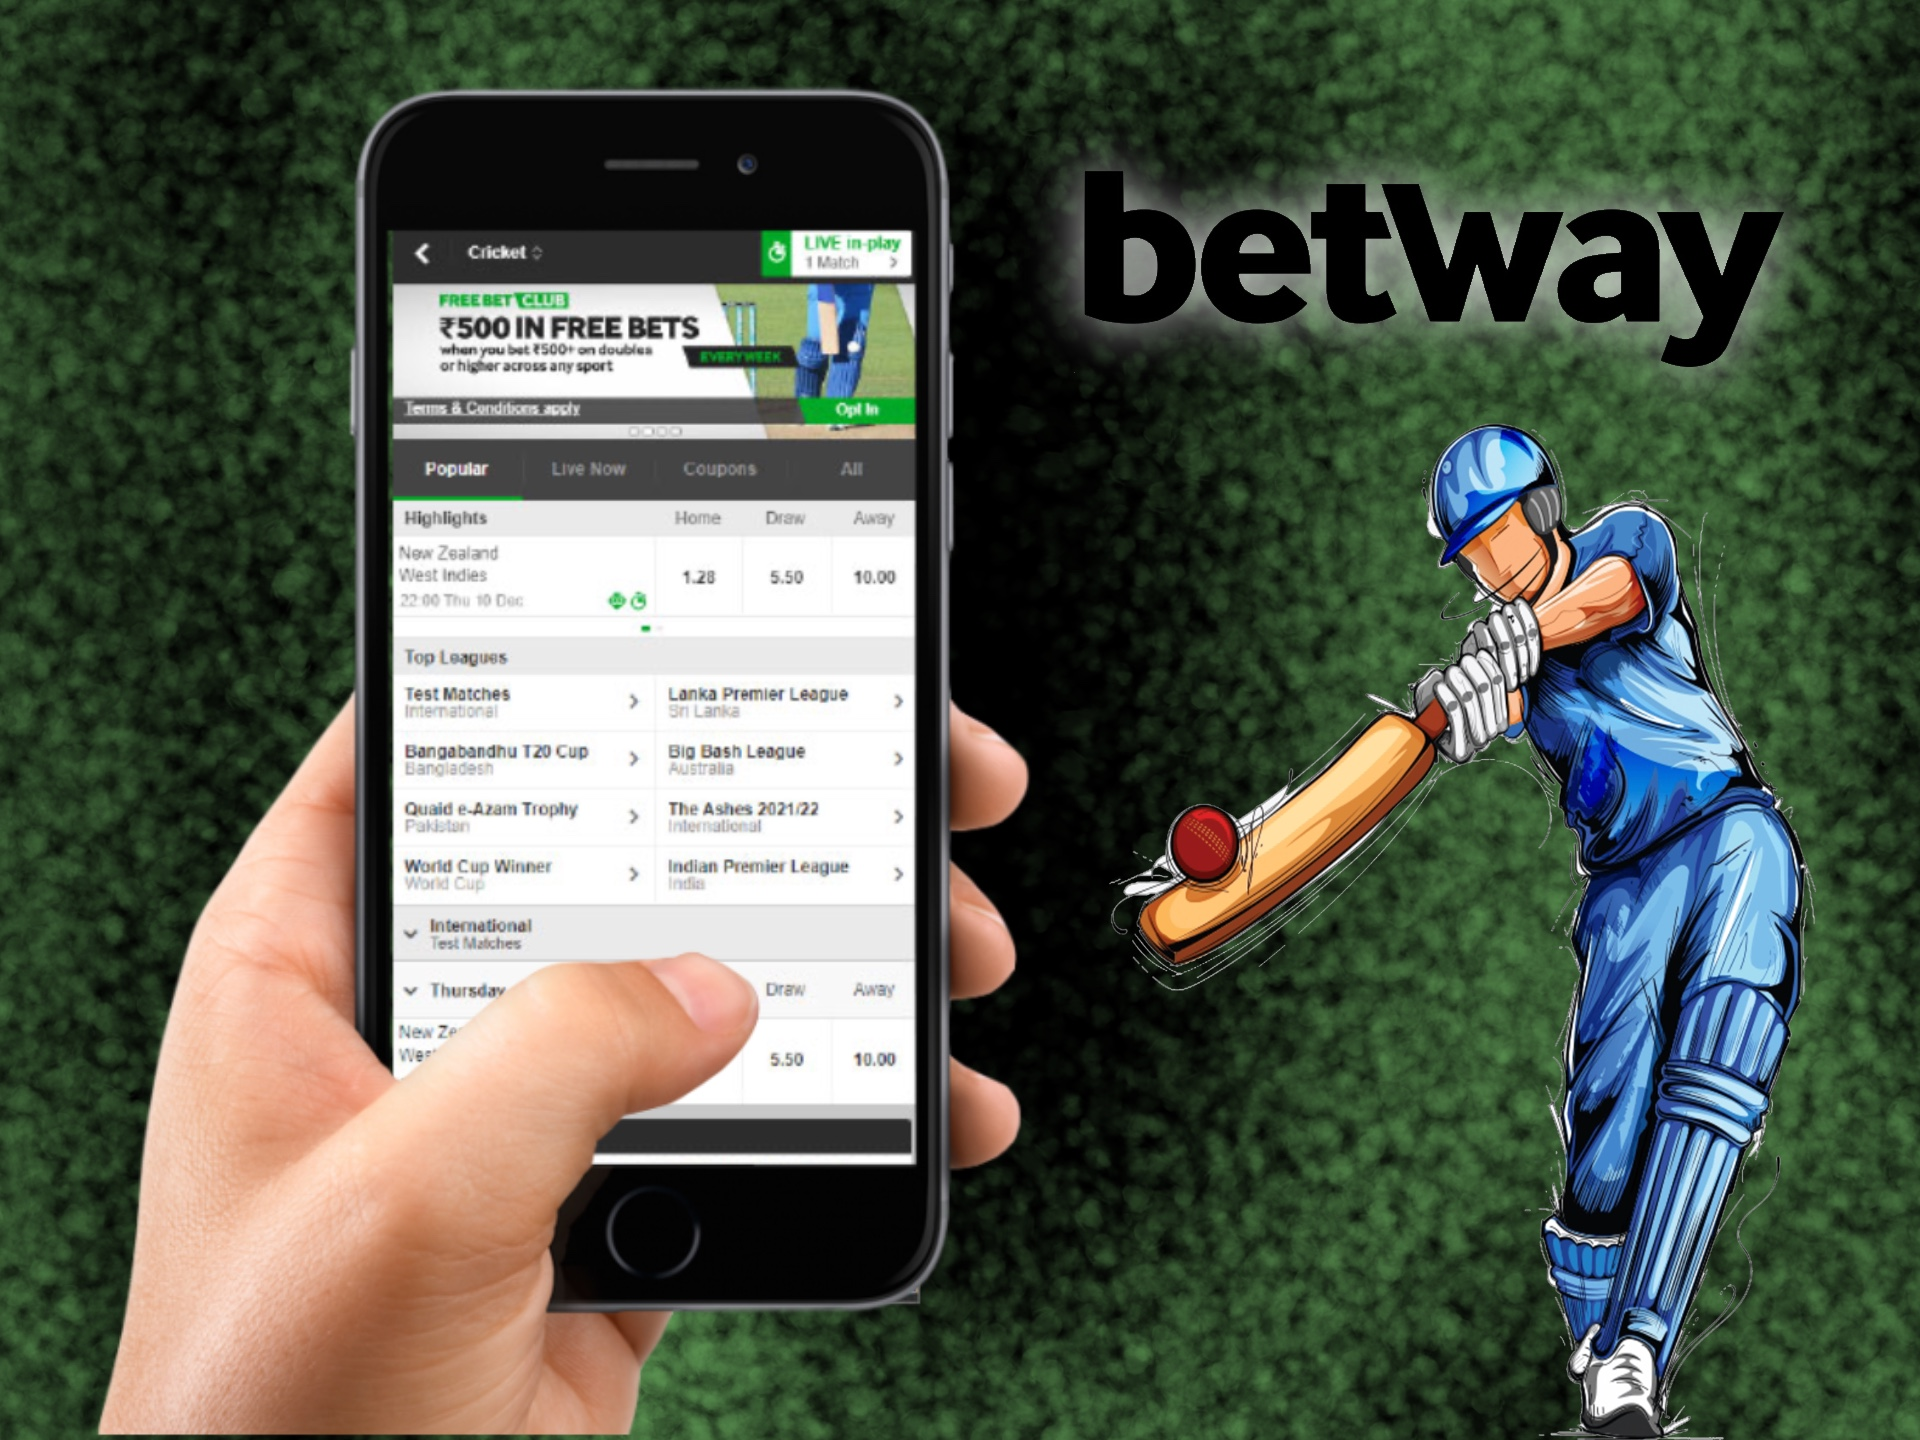 Betting on cricket is more convenient via Betway mobile app.